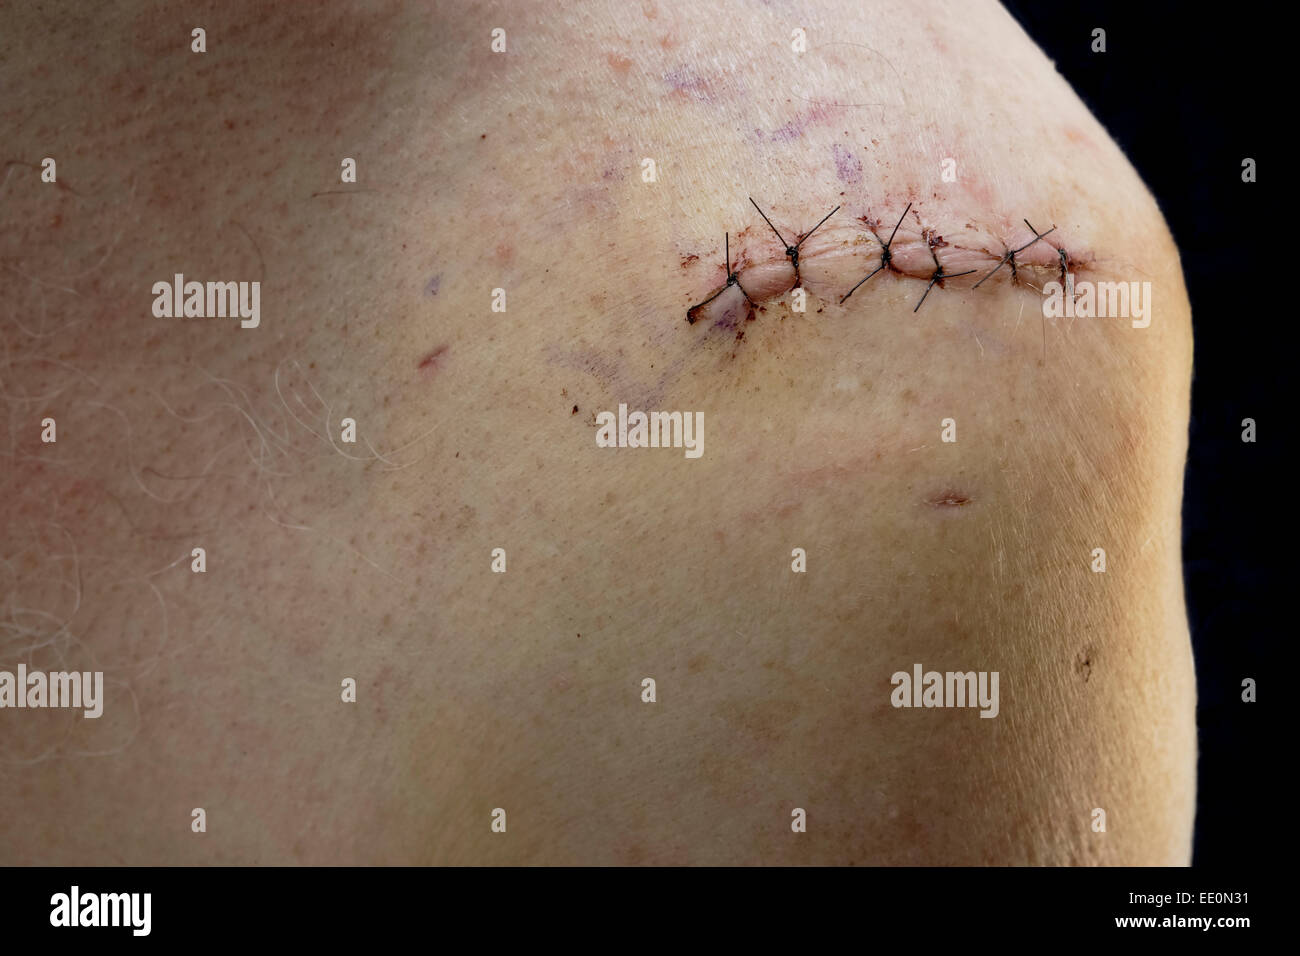 Surgical incision wound from rotator cuff shoulder surgery-Victoria, British Columbia, Canada. Note-Digital composite - Stock Image